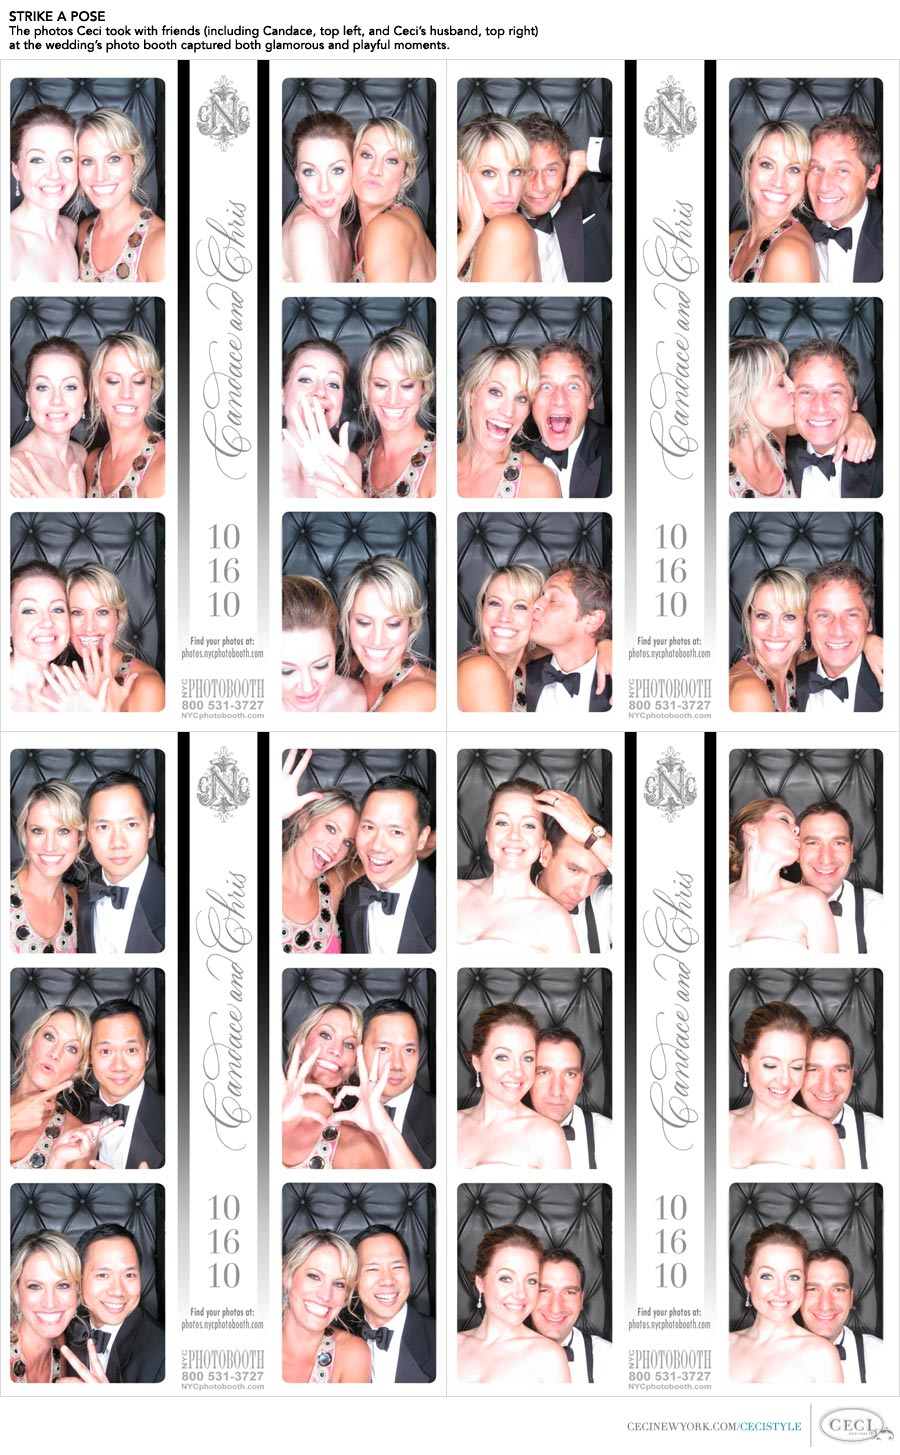 Ceci Johnson of Ceci New York - STRIKE A POSE: The photos Ceci took with friends (including Candace, top left, and her husband, top right) at the wedding's photo booth captured both glamorous and playful moments.